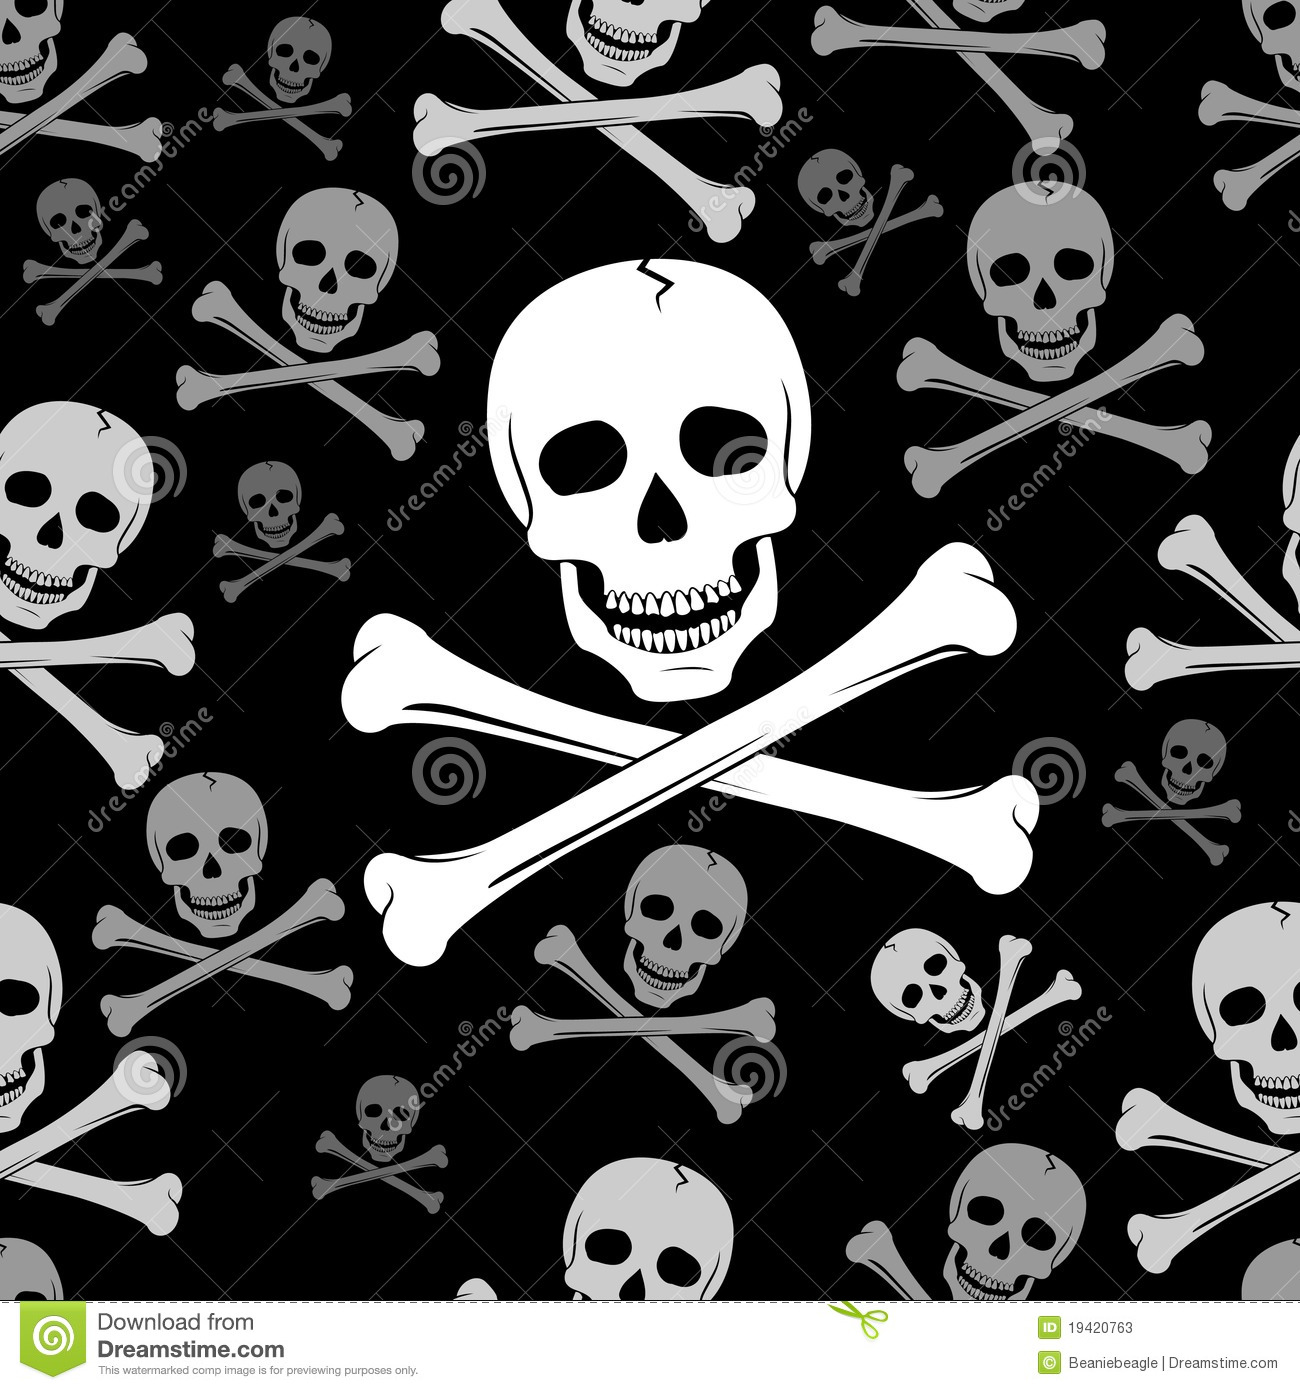 ... of a classic black and white skull and crossbones seamless pattern